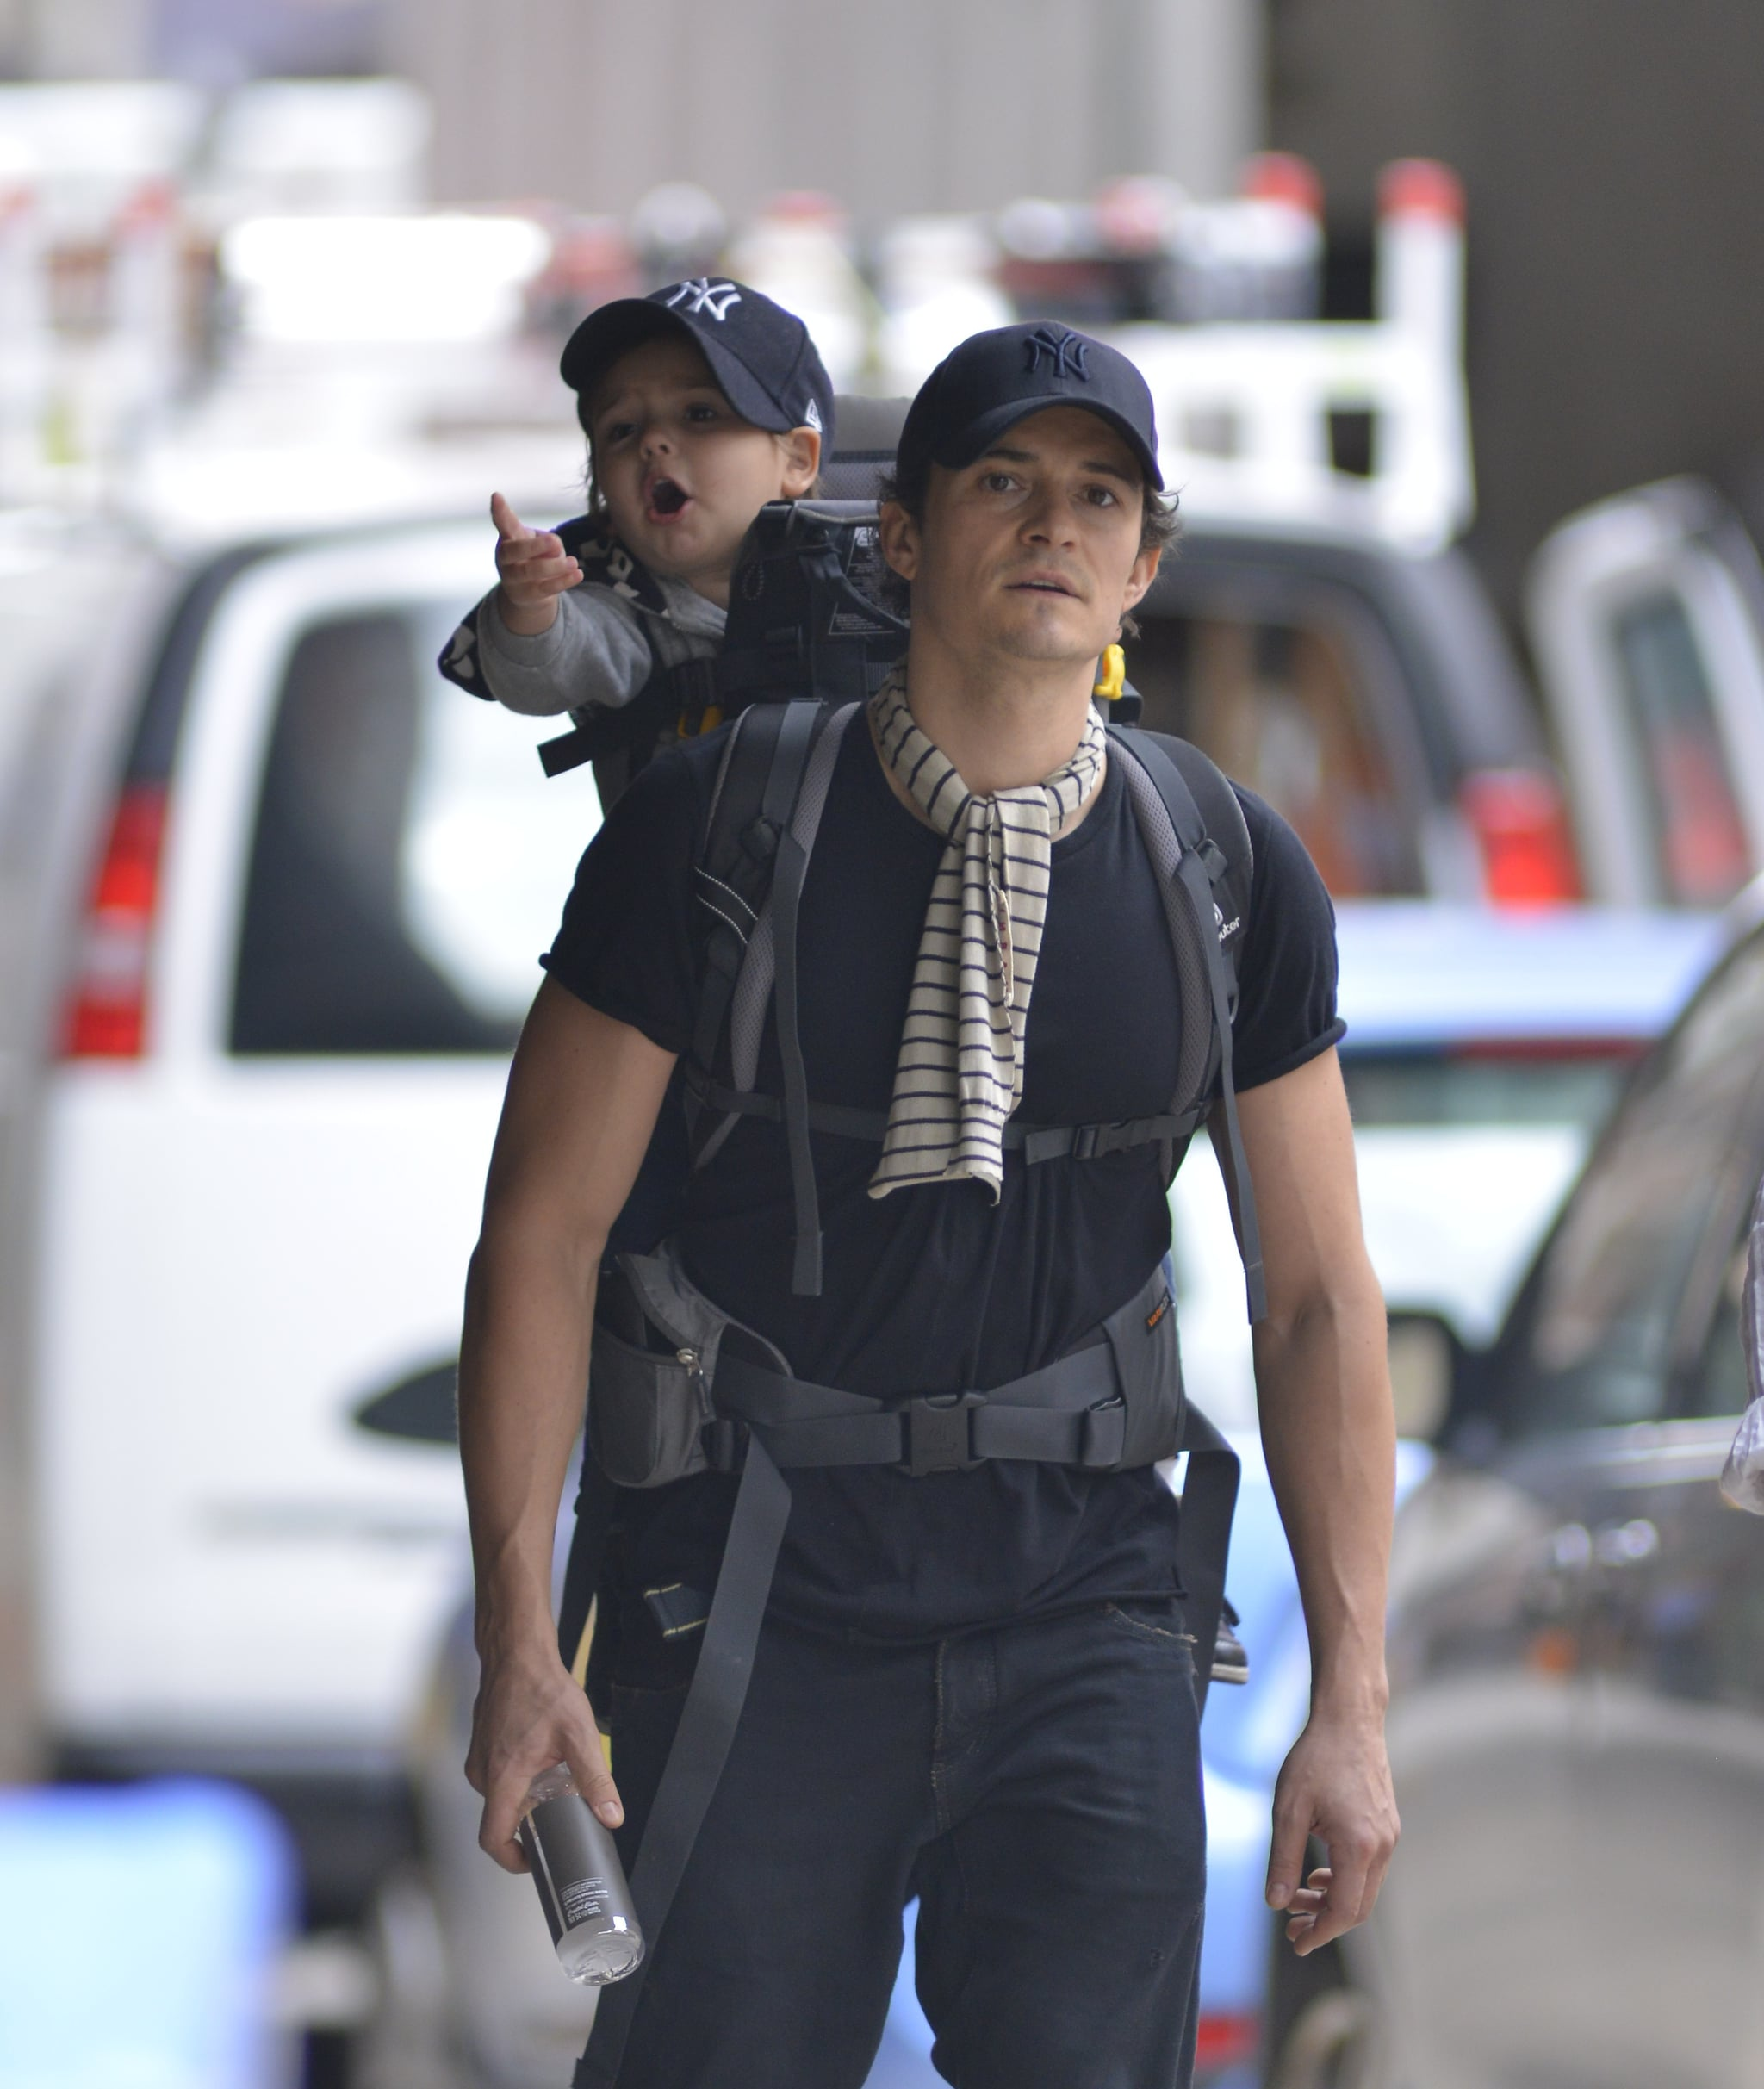 Orlando Bloom took his son, Flynn, out and about in NYC on Monday.